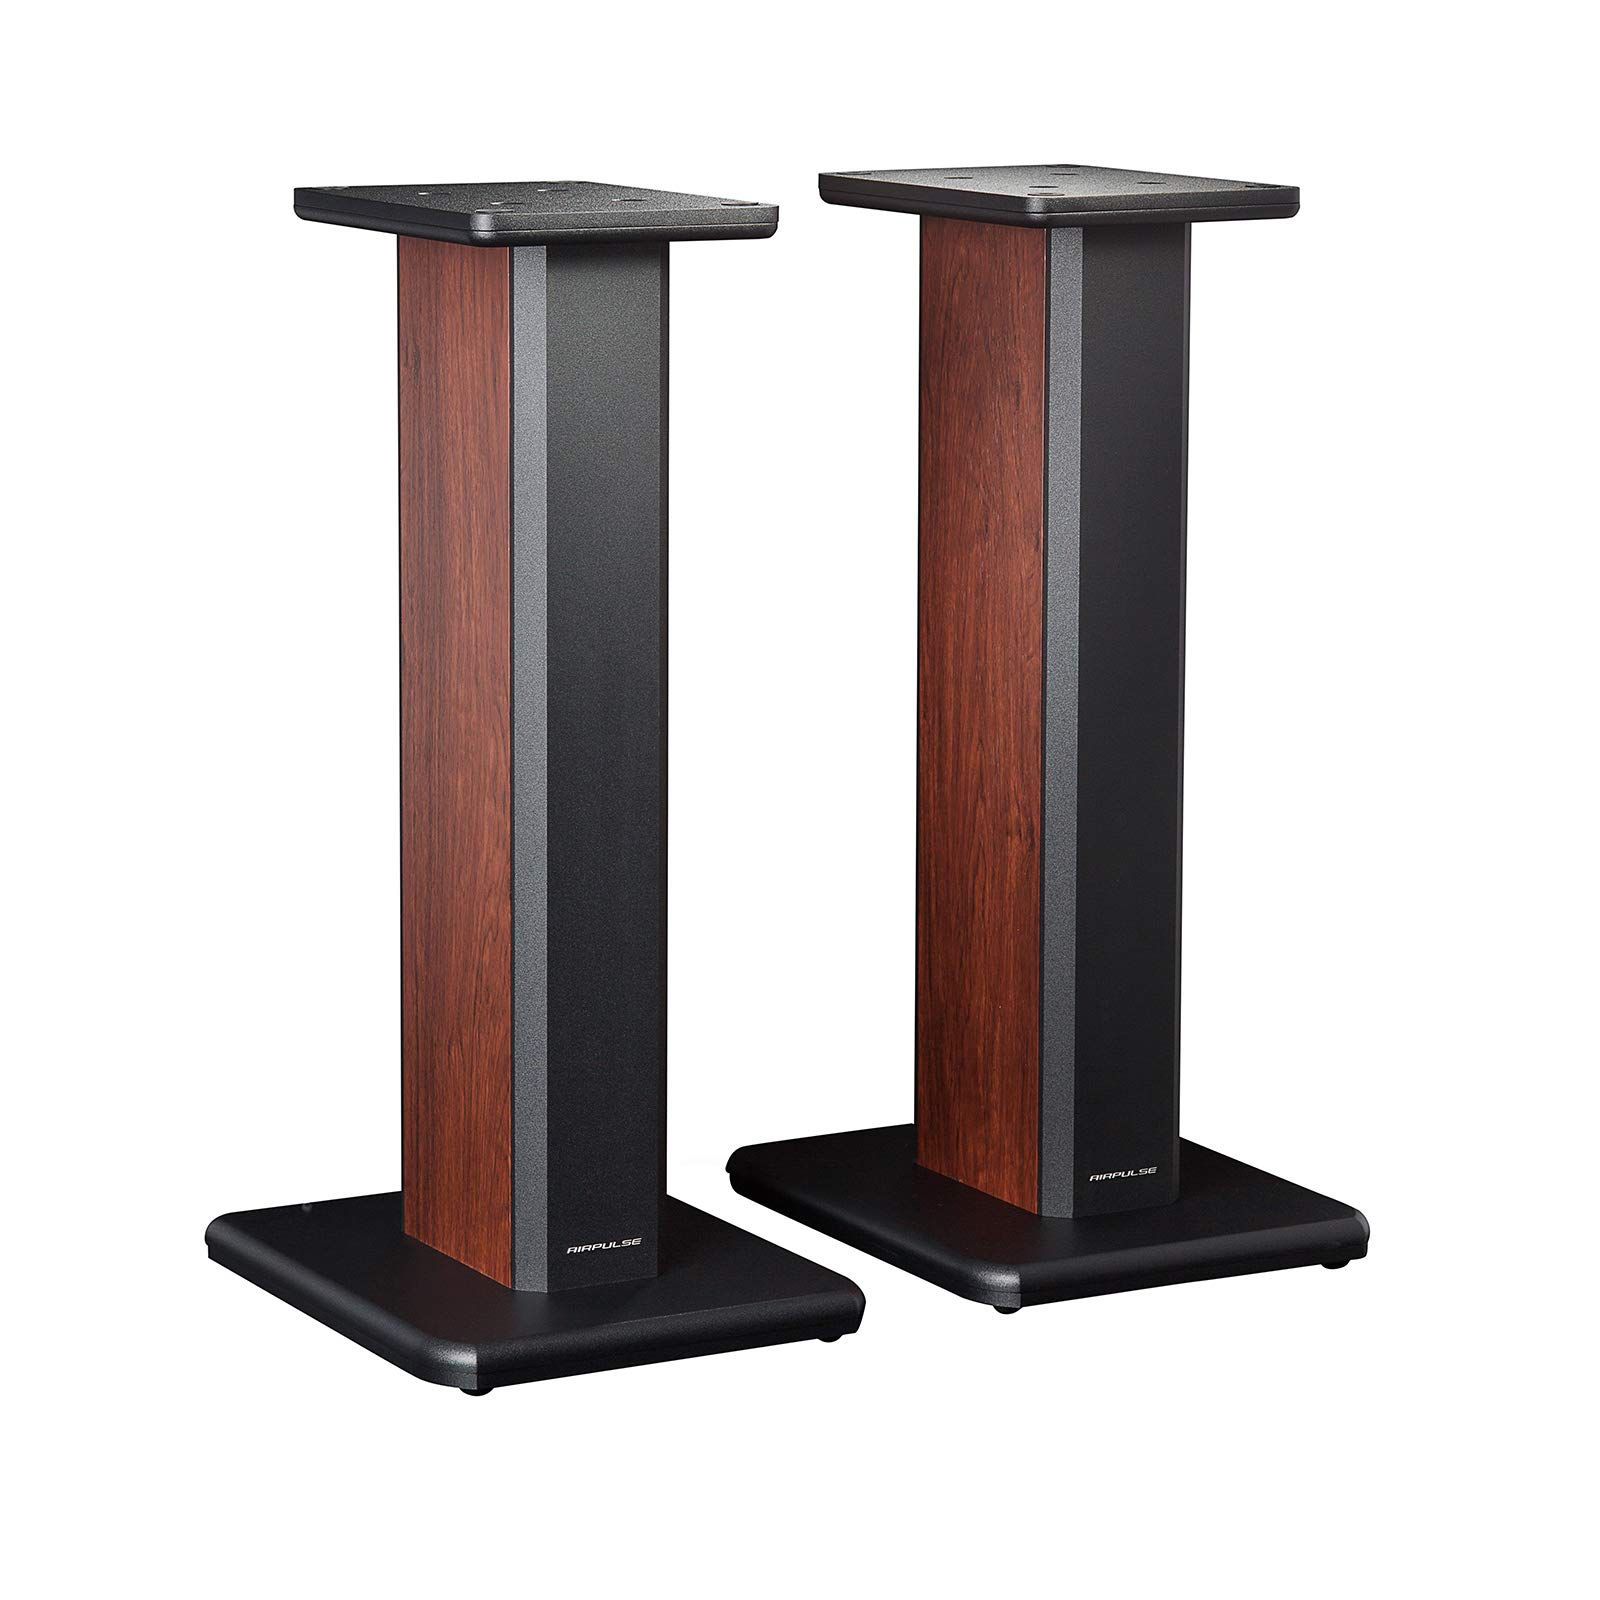 Airpulse Speaker Stands ST200 for A200 Hollowed Stands for Optional Sand Filling Tuning - Pair